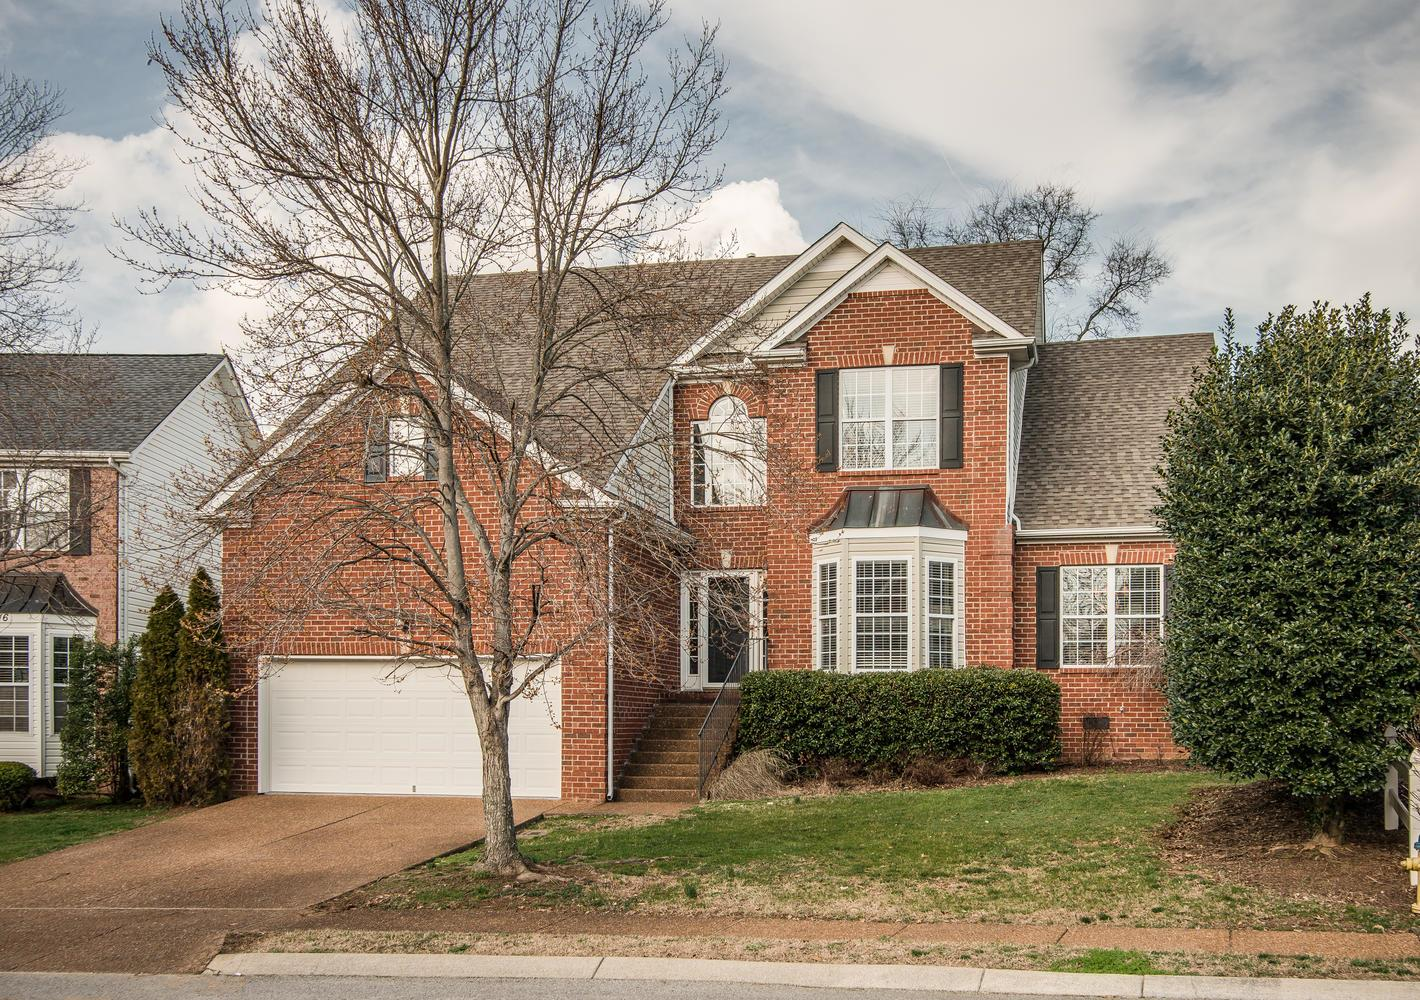 Steps to Selling a Home in Clarksville TN